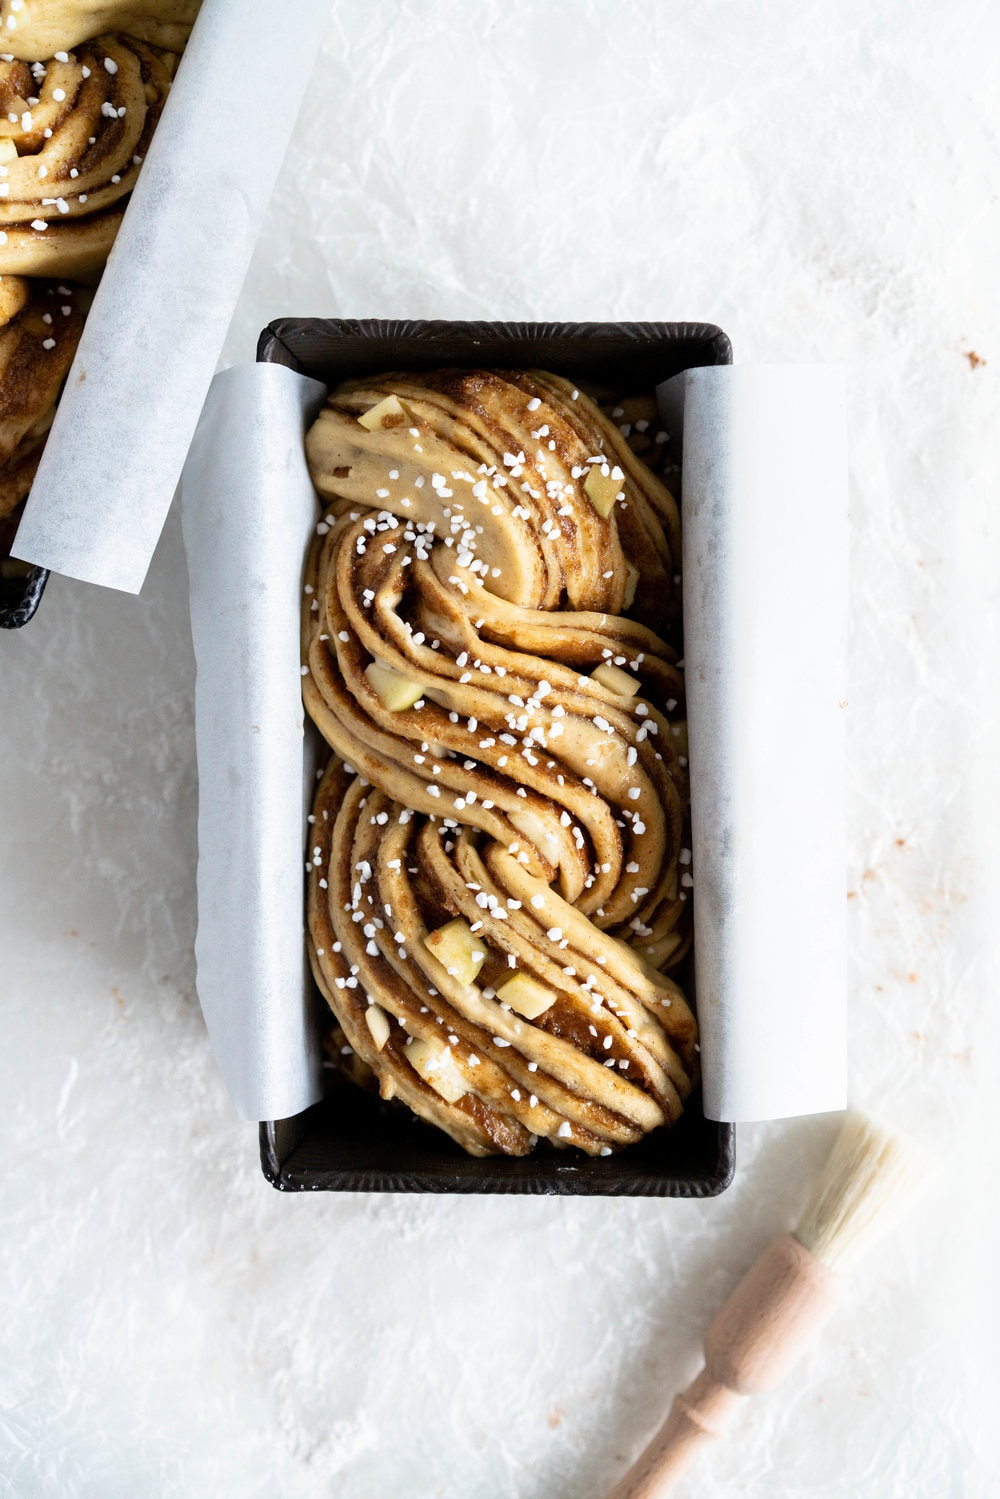 Apple and Cardamom brioche babka - lightly spiced babka dough is filled with a spiced brown sugar mixture and fresh apple, then rolled into a tight babka swirl. Inspired by the swedish cinnamon roll, this is a perfect fall baking project. #babka #cardamom #brioche